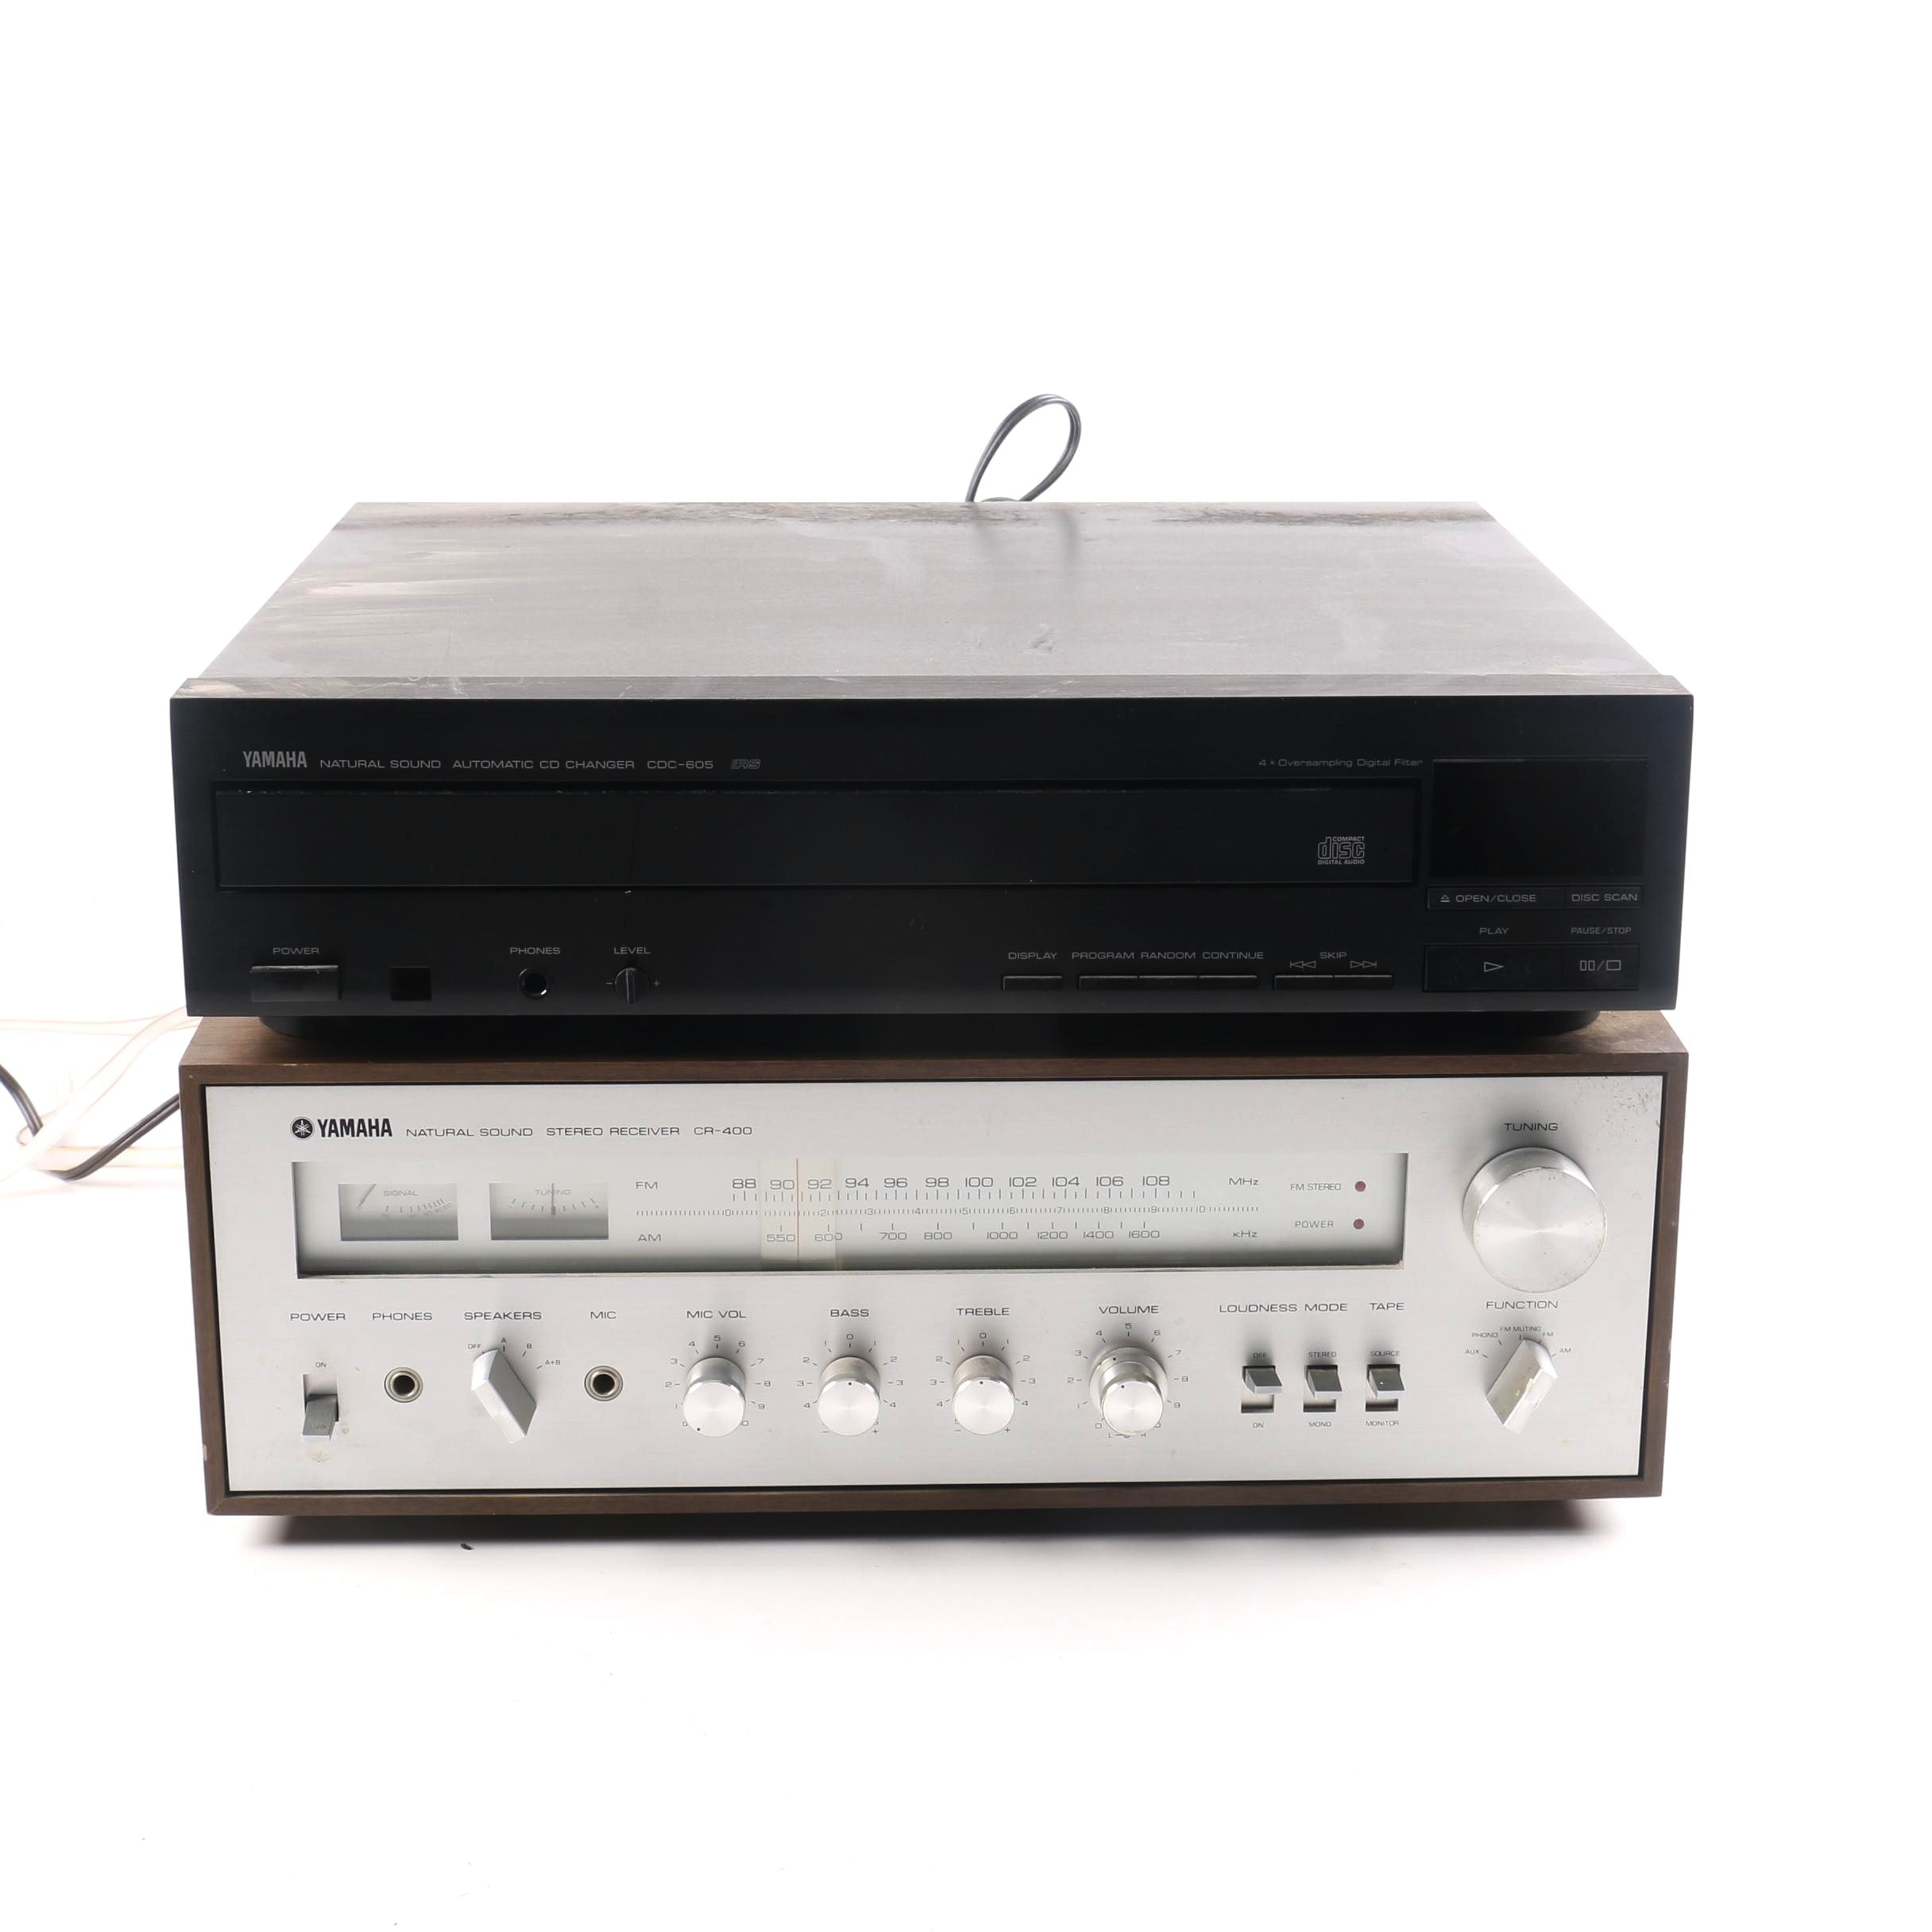 Vintage Yamaha Receiver and CD Changer